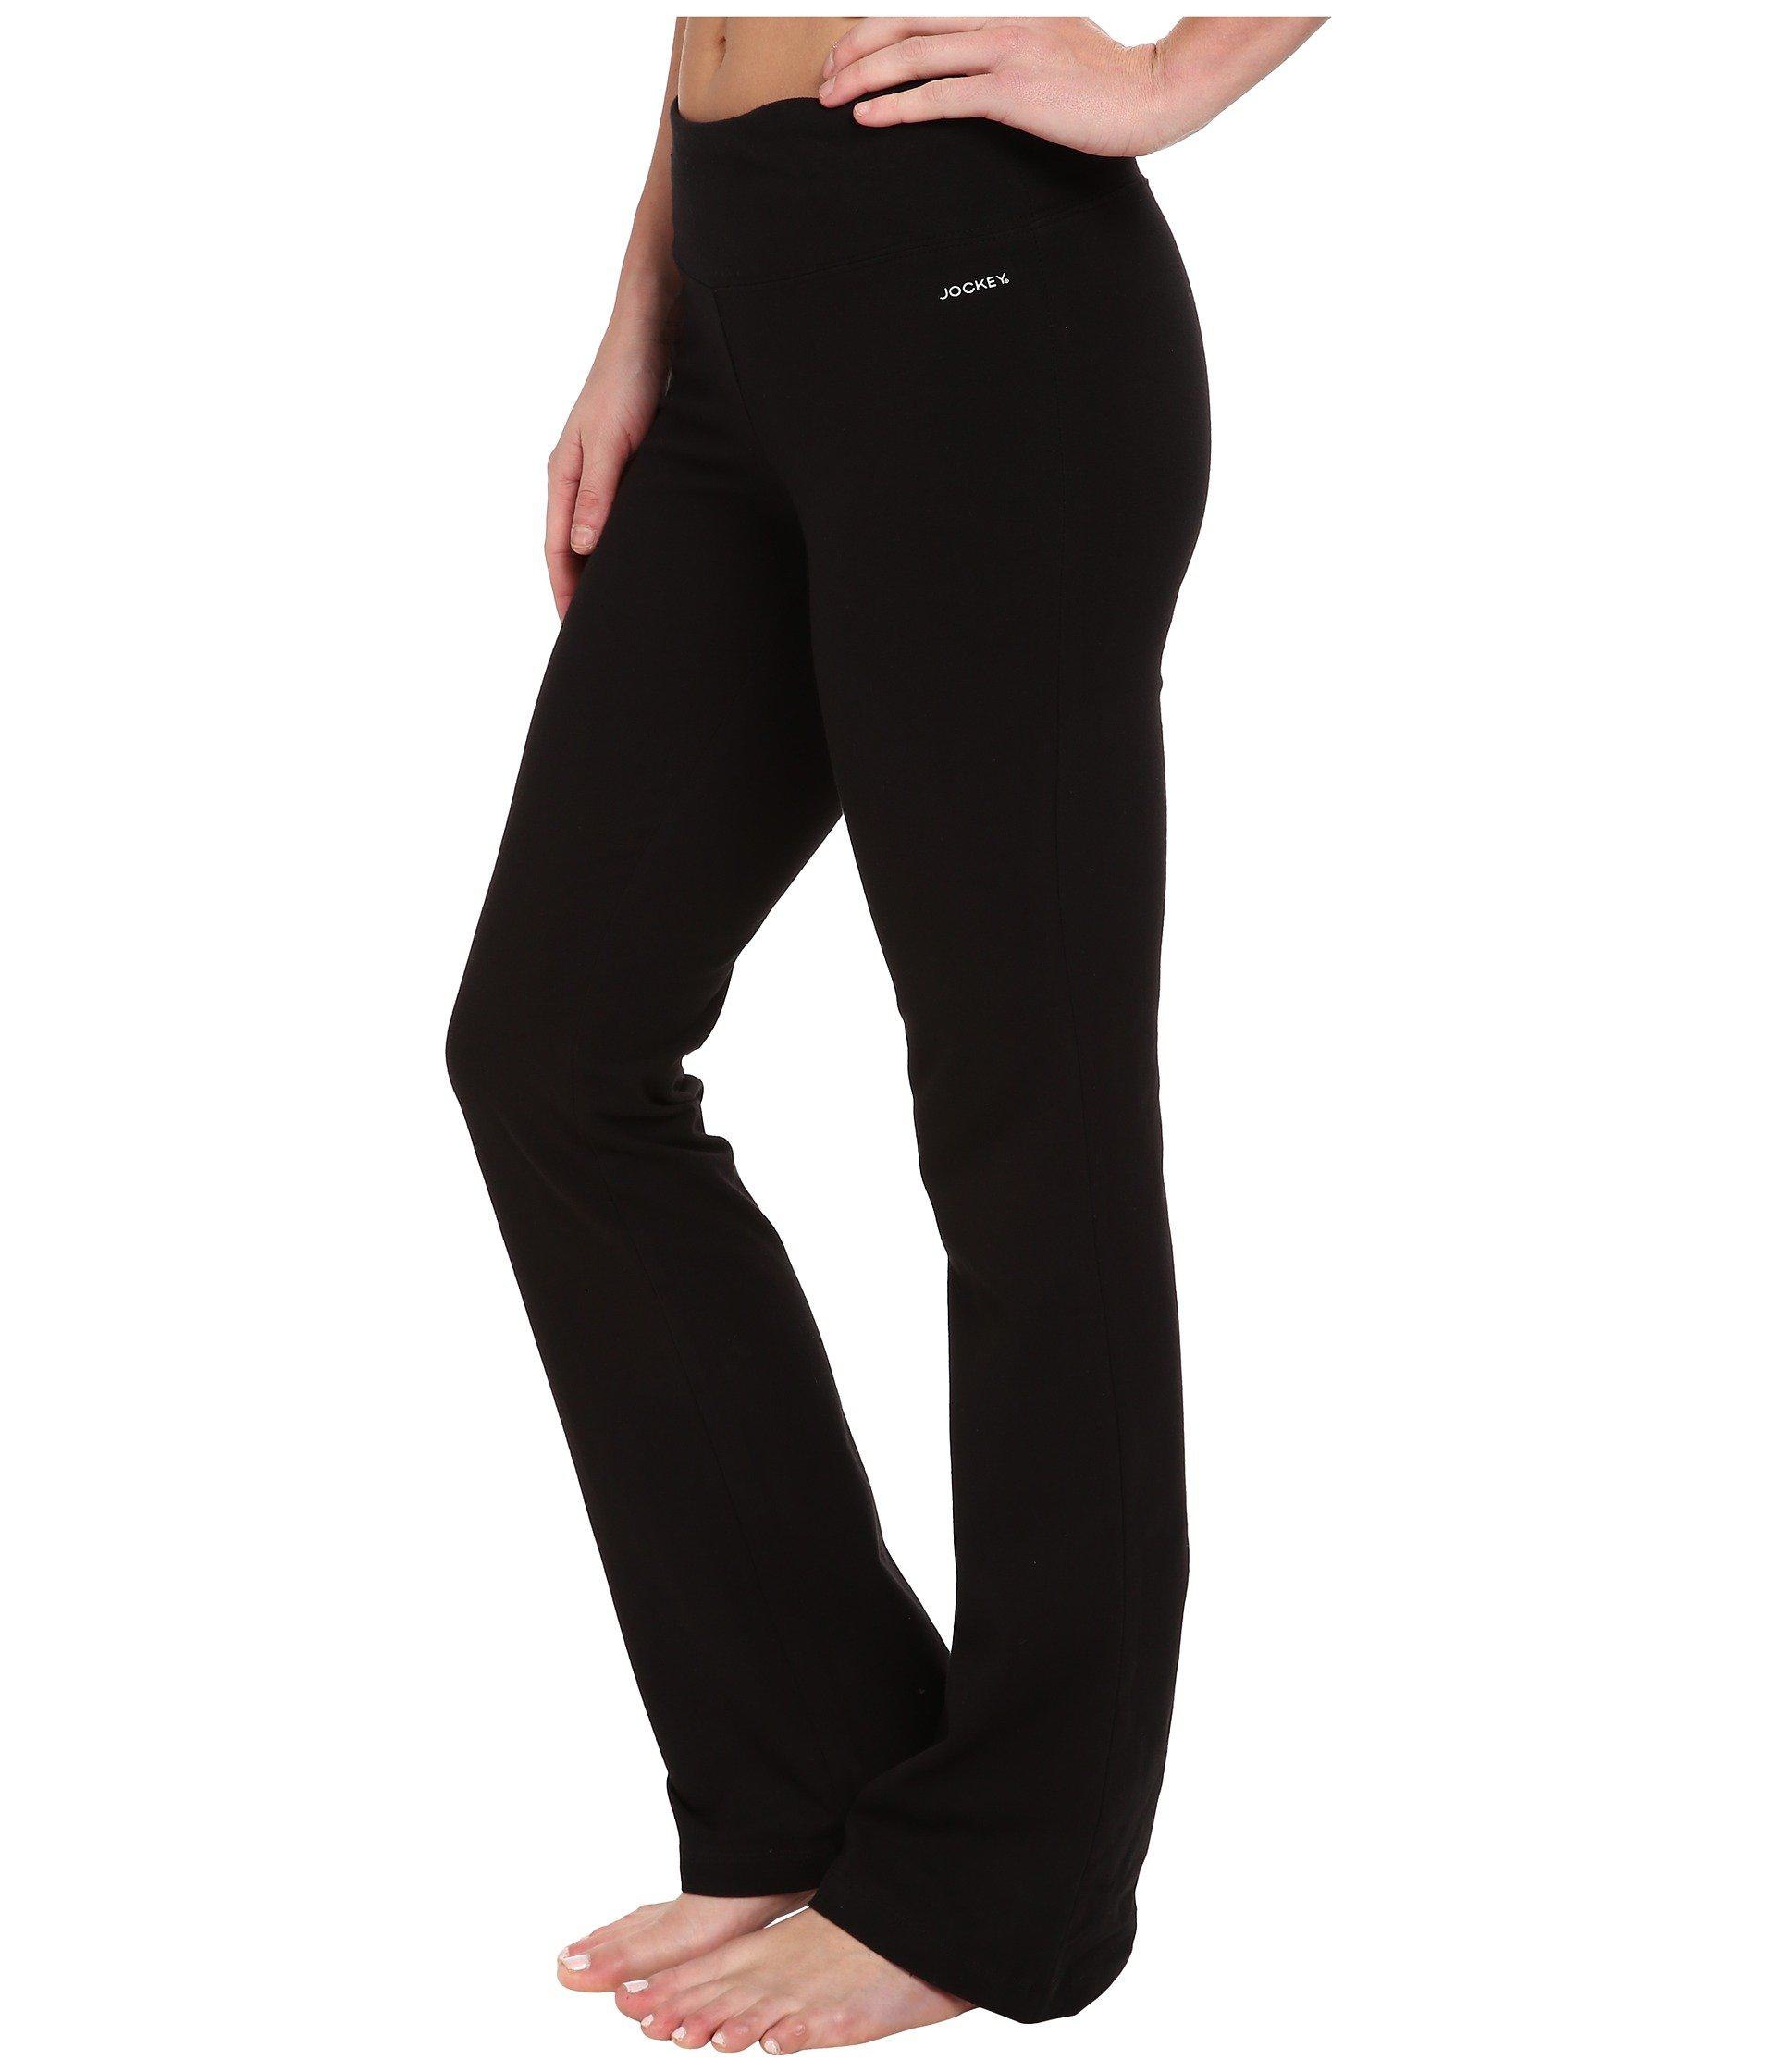 6e62adefb9f58 Lyst - Jockey Active Slim Bootleg (charcoal) Women's Casual Pants in Black